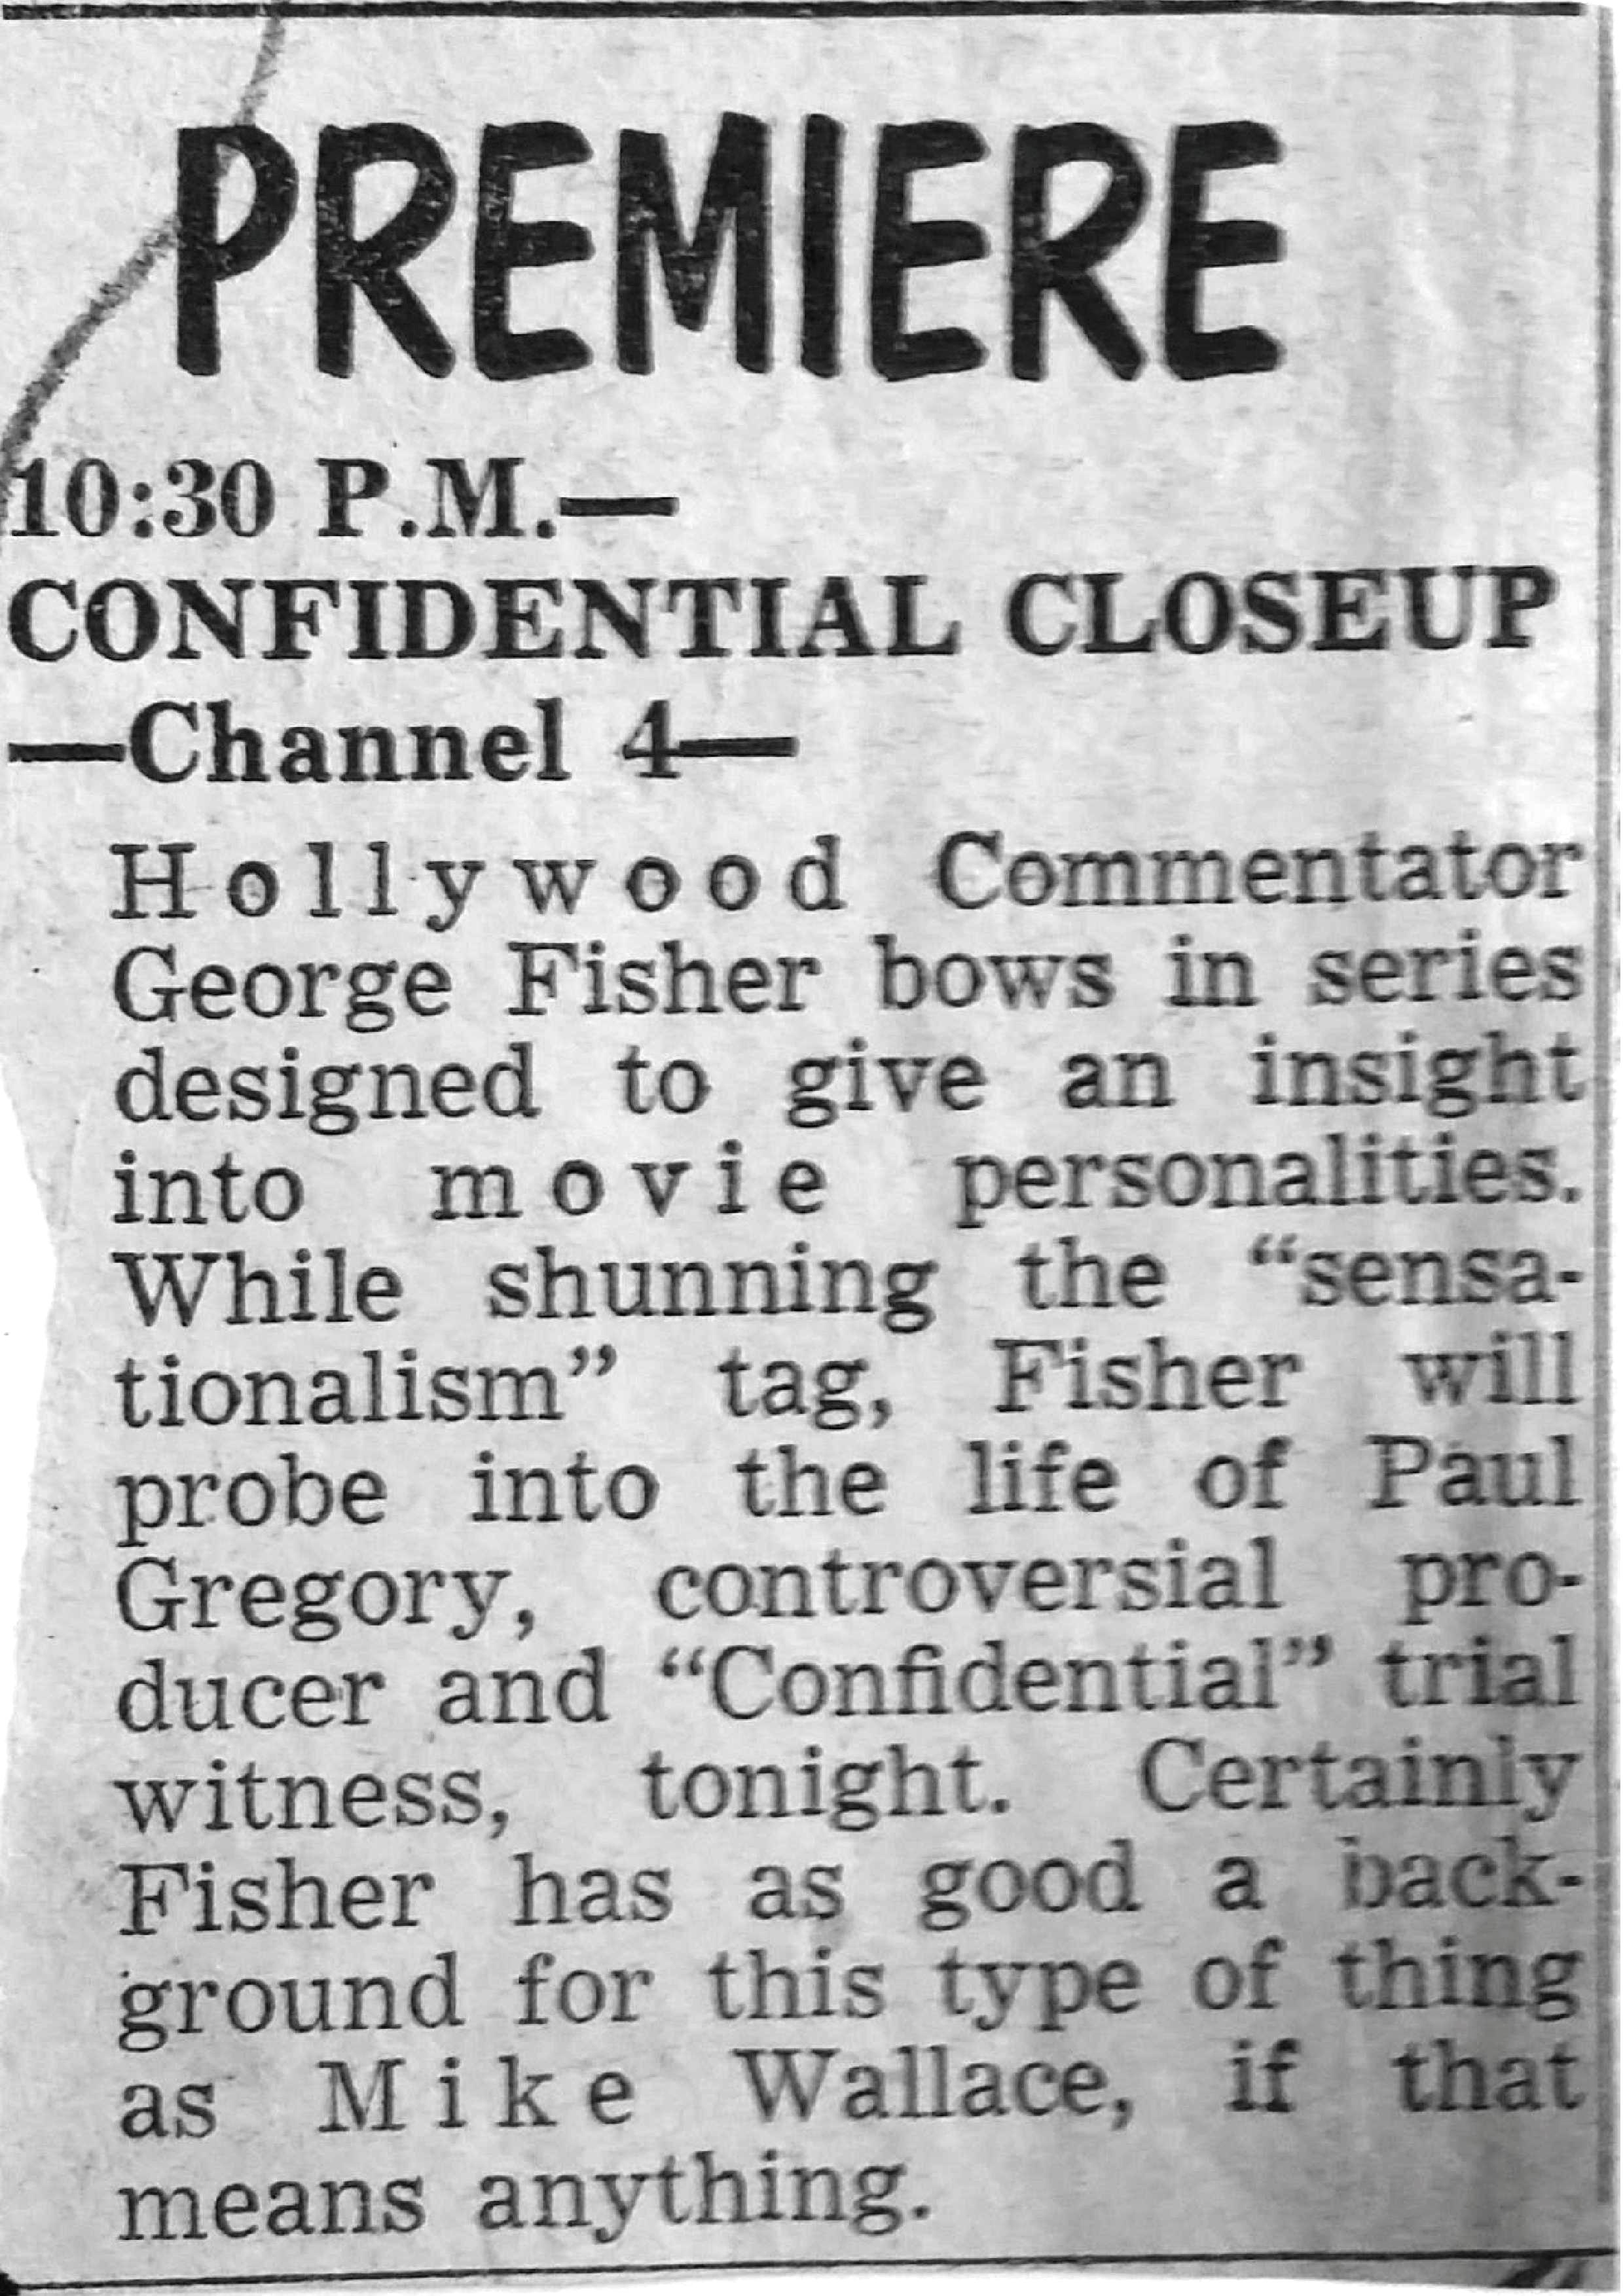 George Fischer   Confidential Closeup on Ch. 4-page-001.jpg